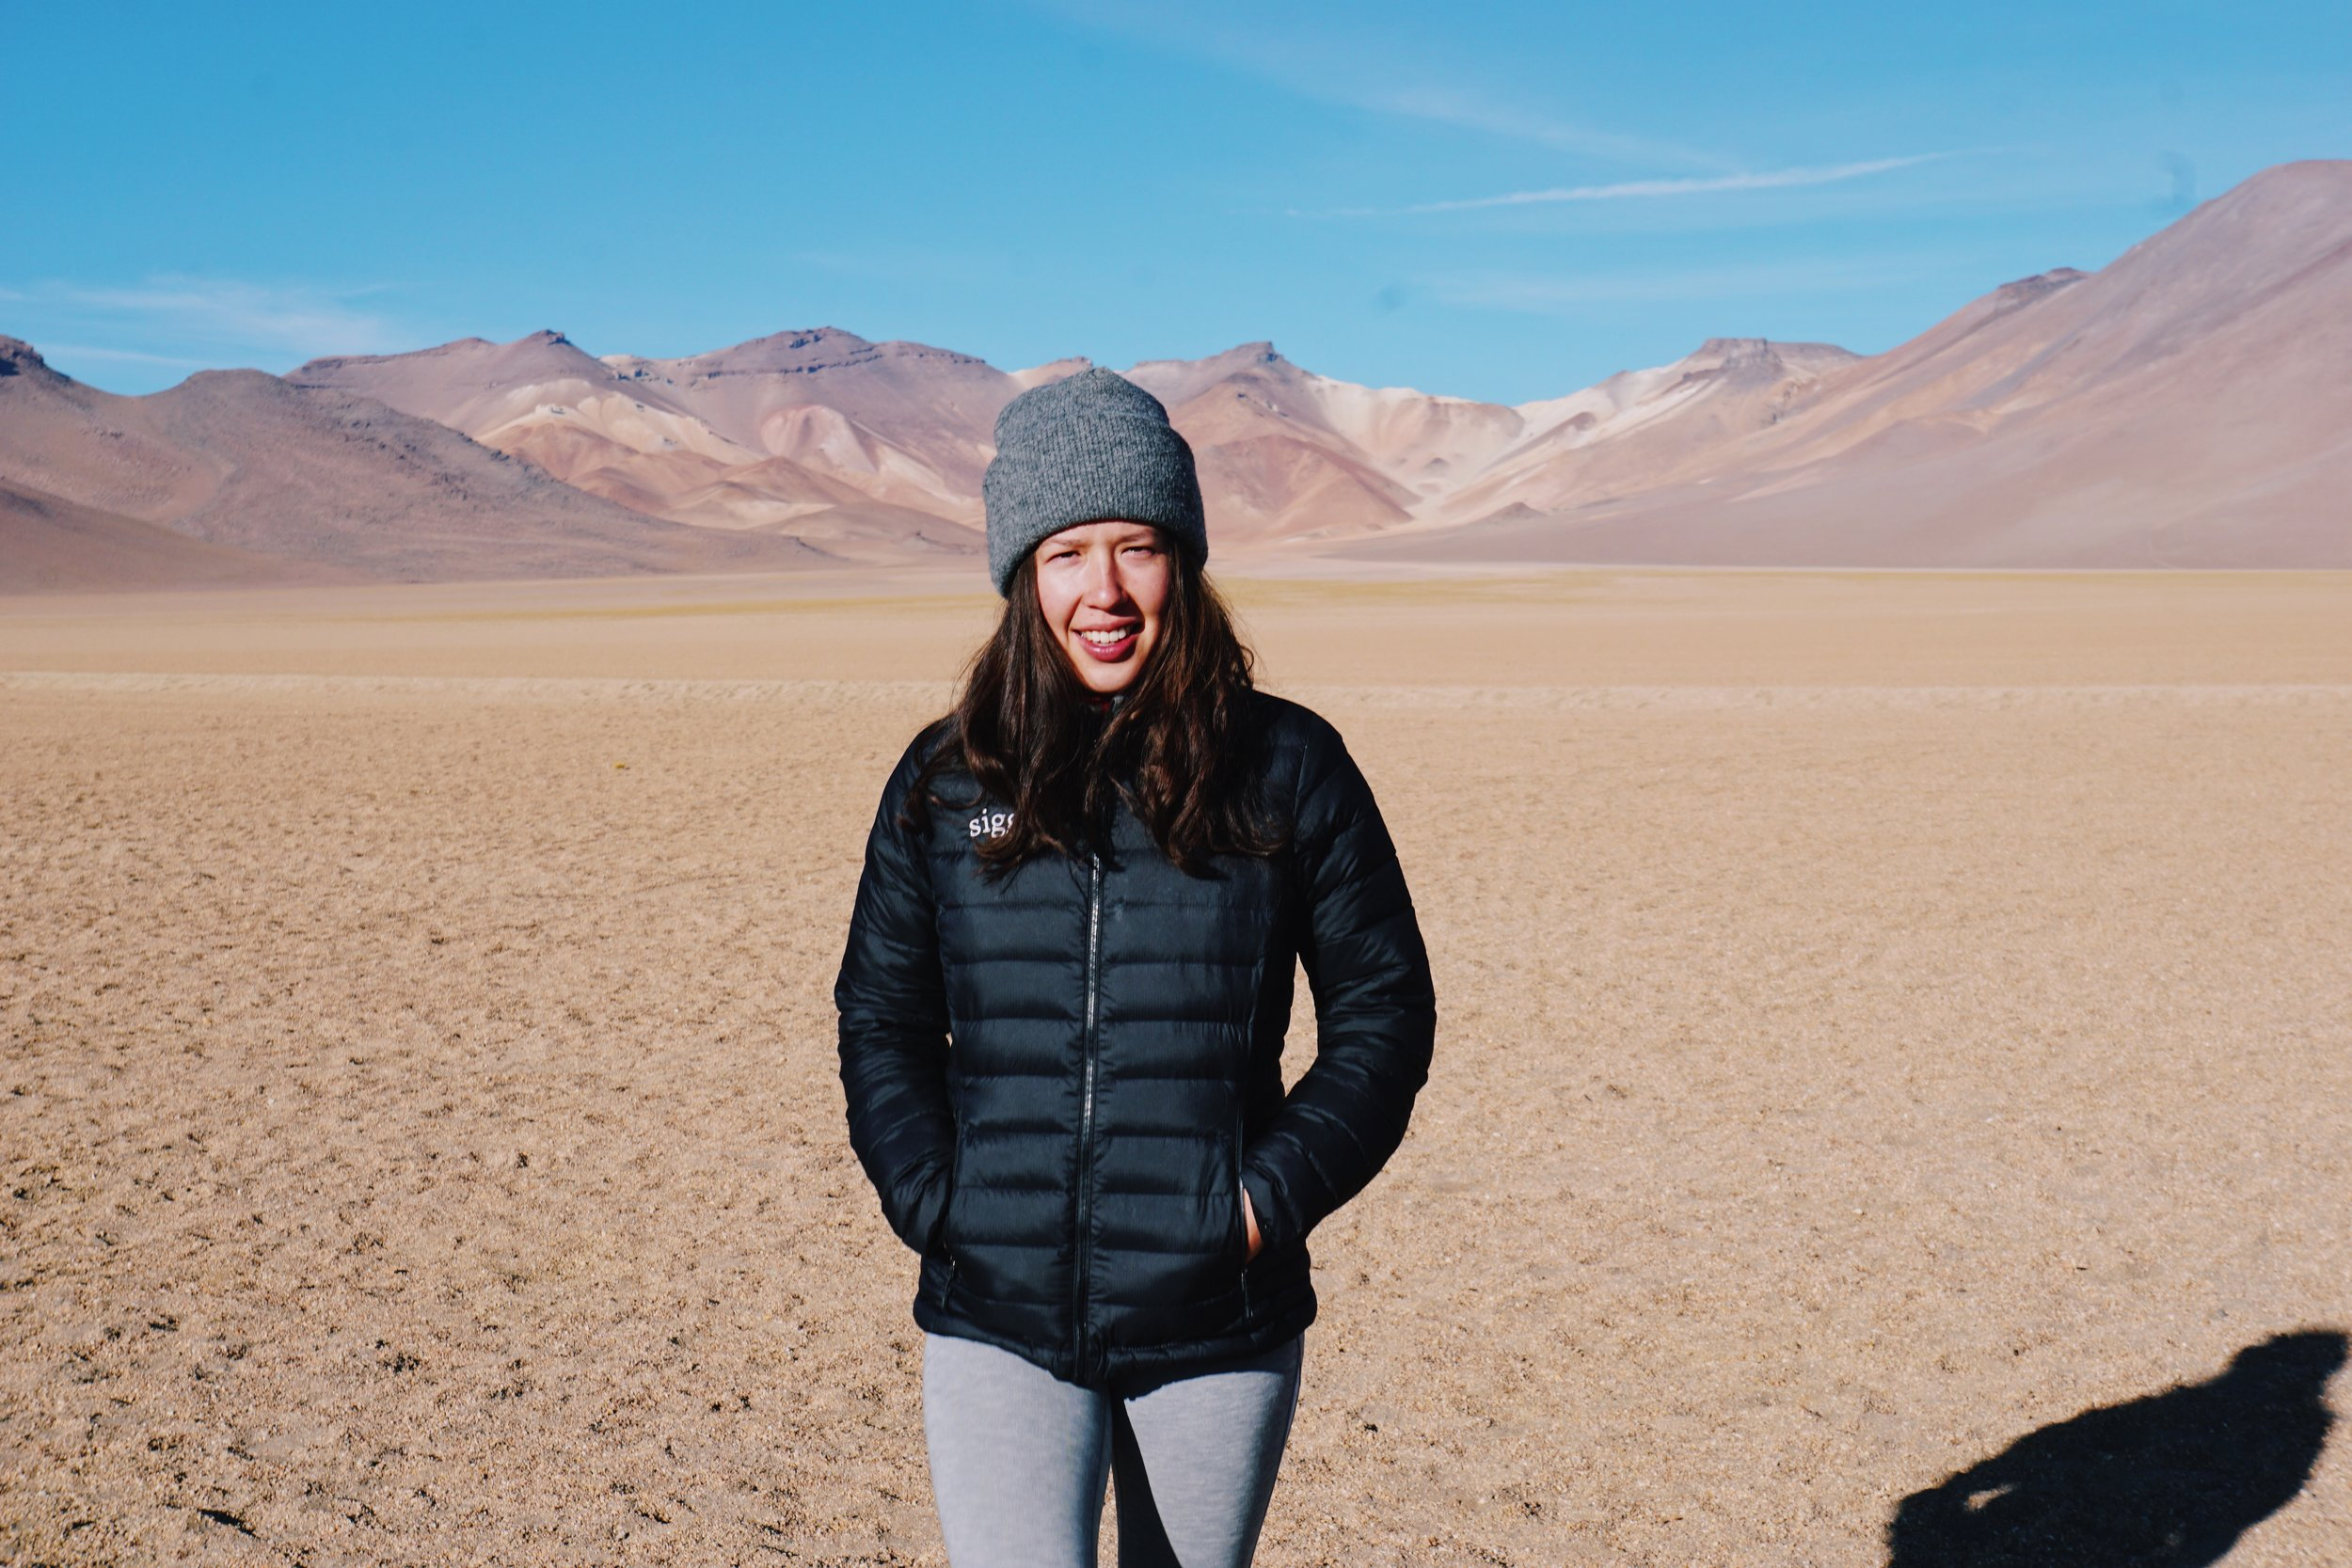 Left: Patagonia Synchilla Fleece in Huaraz, Peru. Right: Patagonia Down Jacket in Salar de Uyuni, Bolivia.